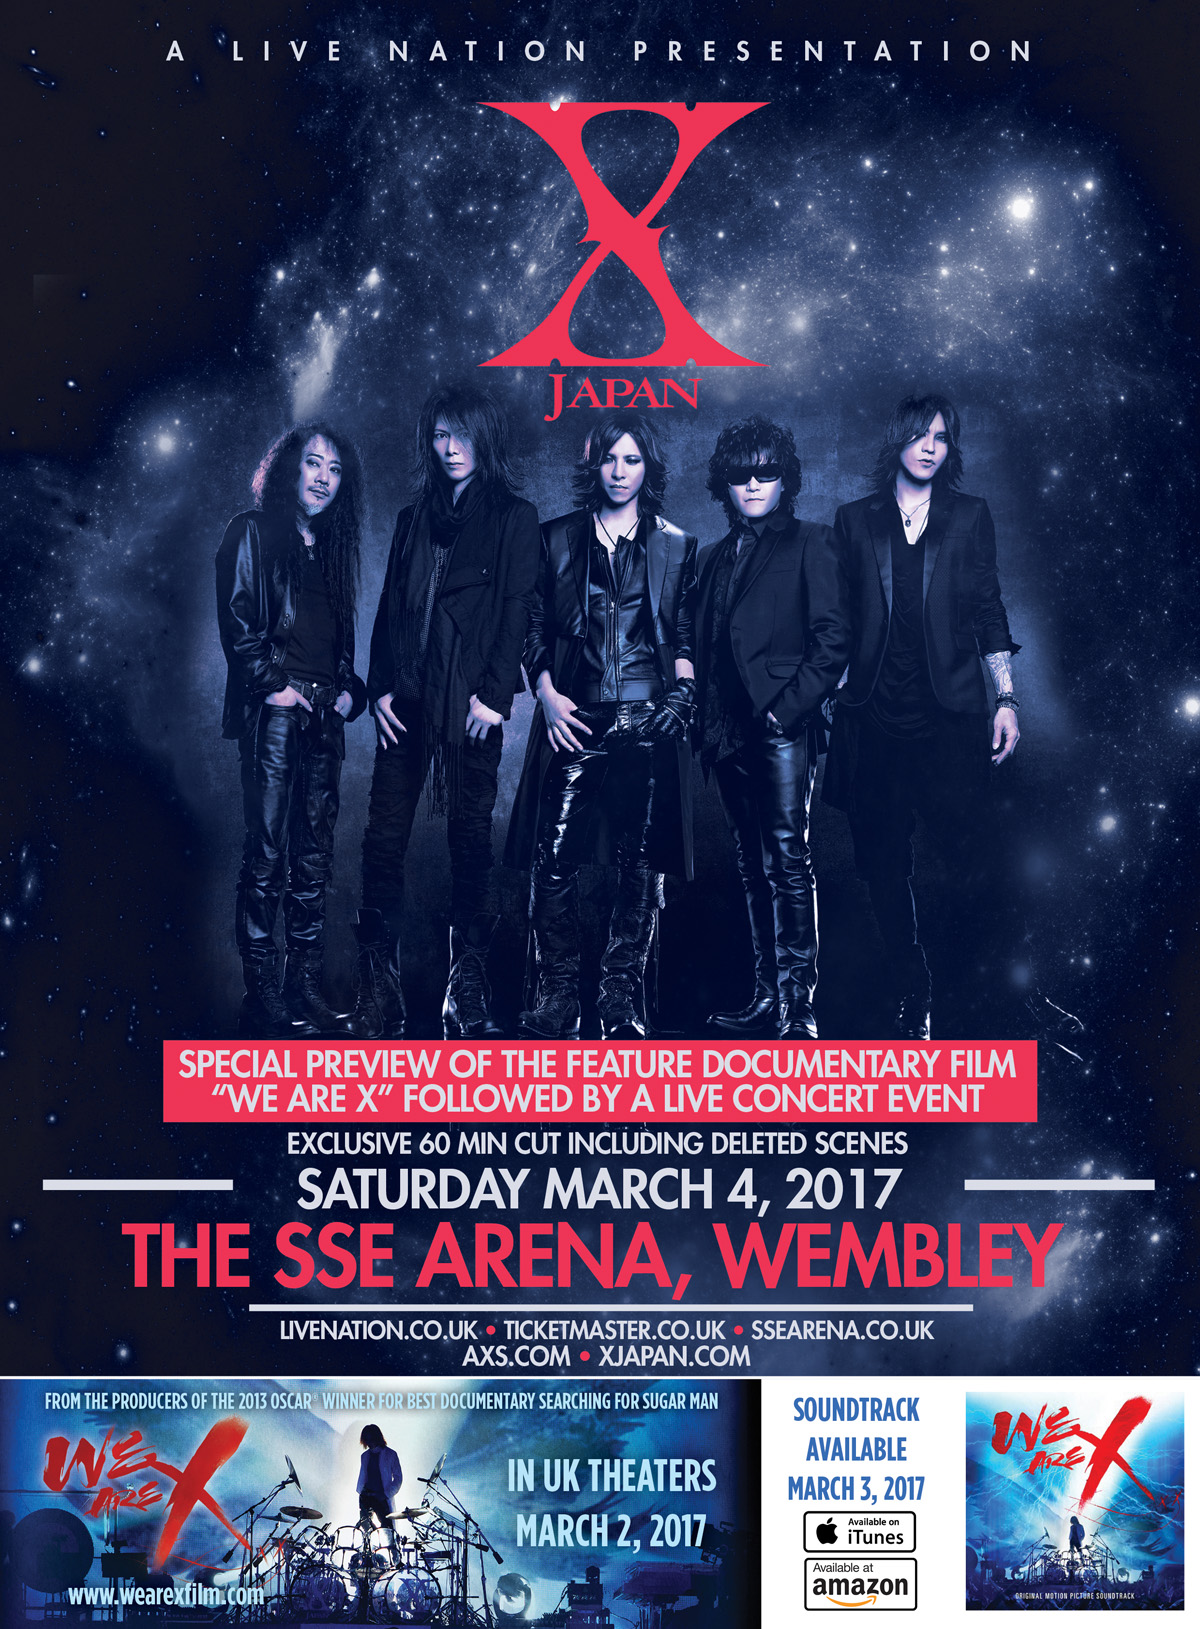 RMMS-X-Japan-Wembley-Arena-2017-promo1